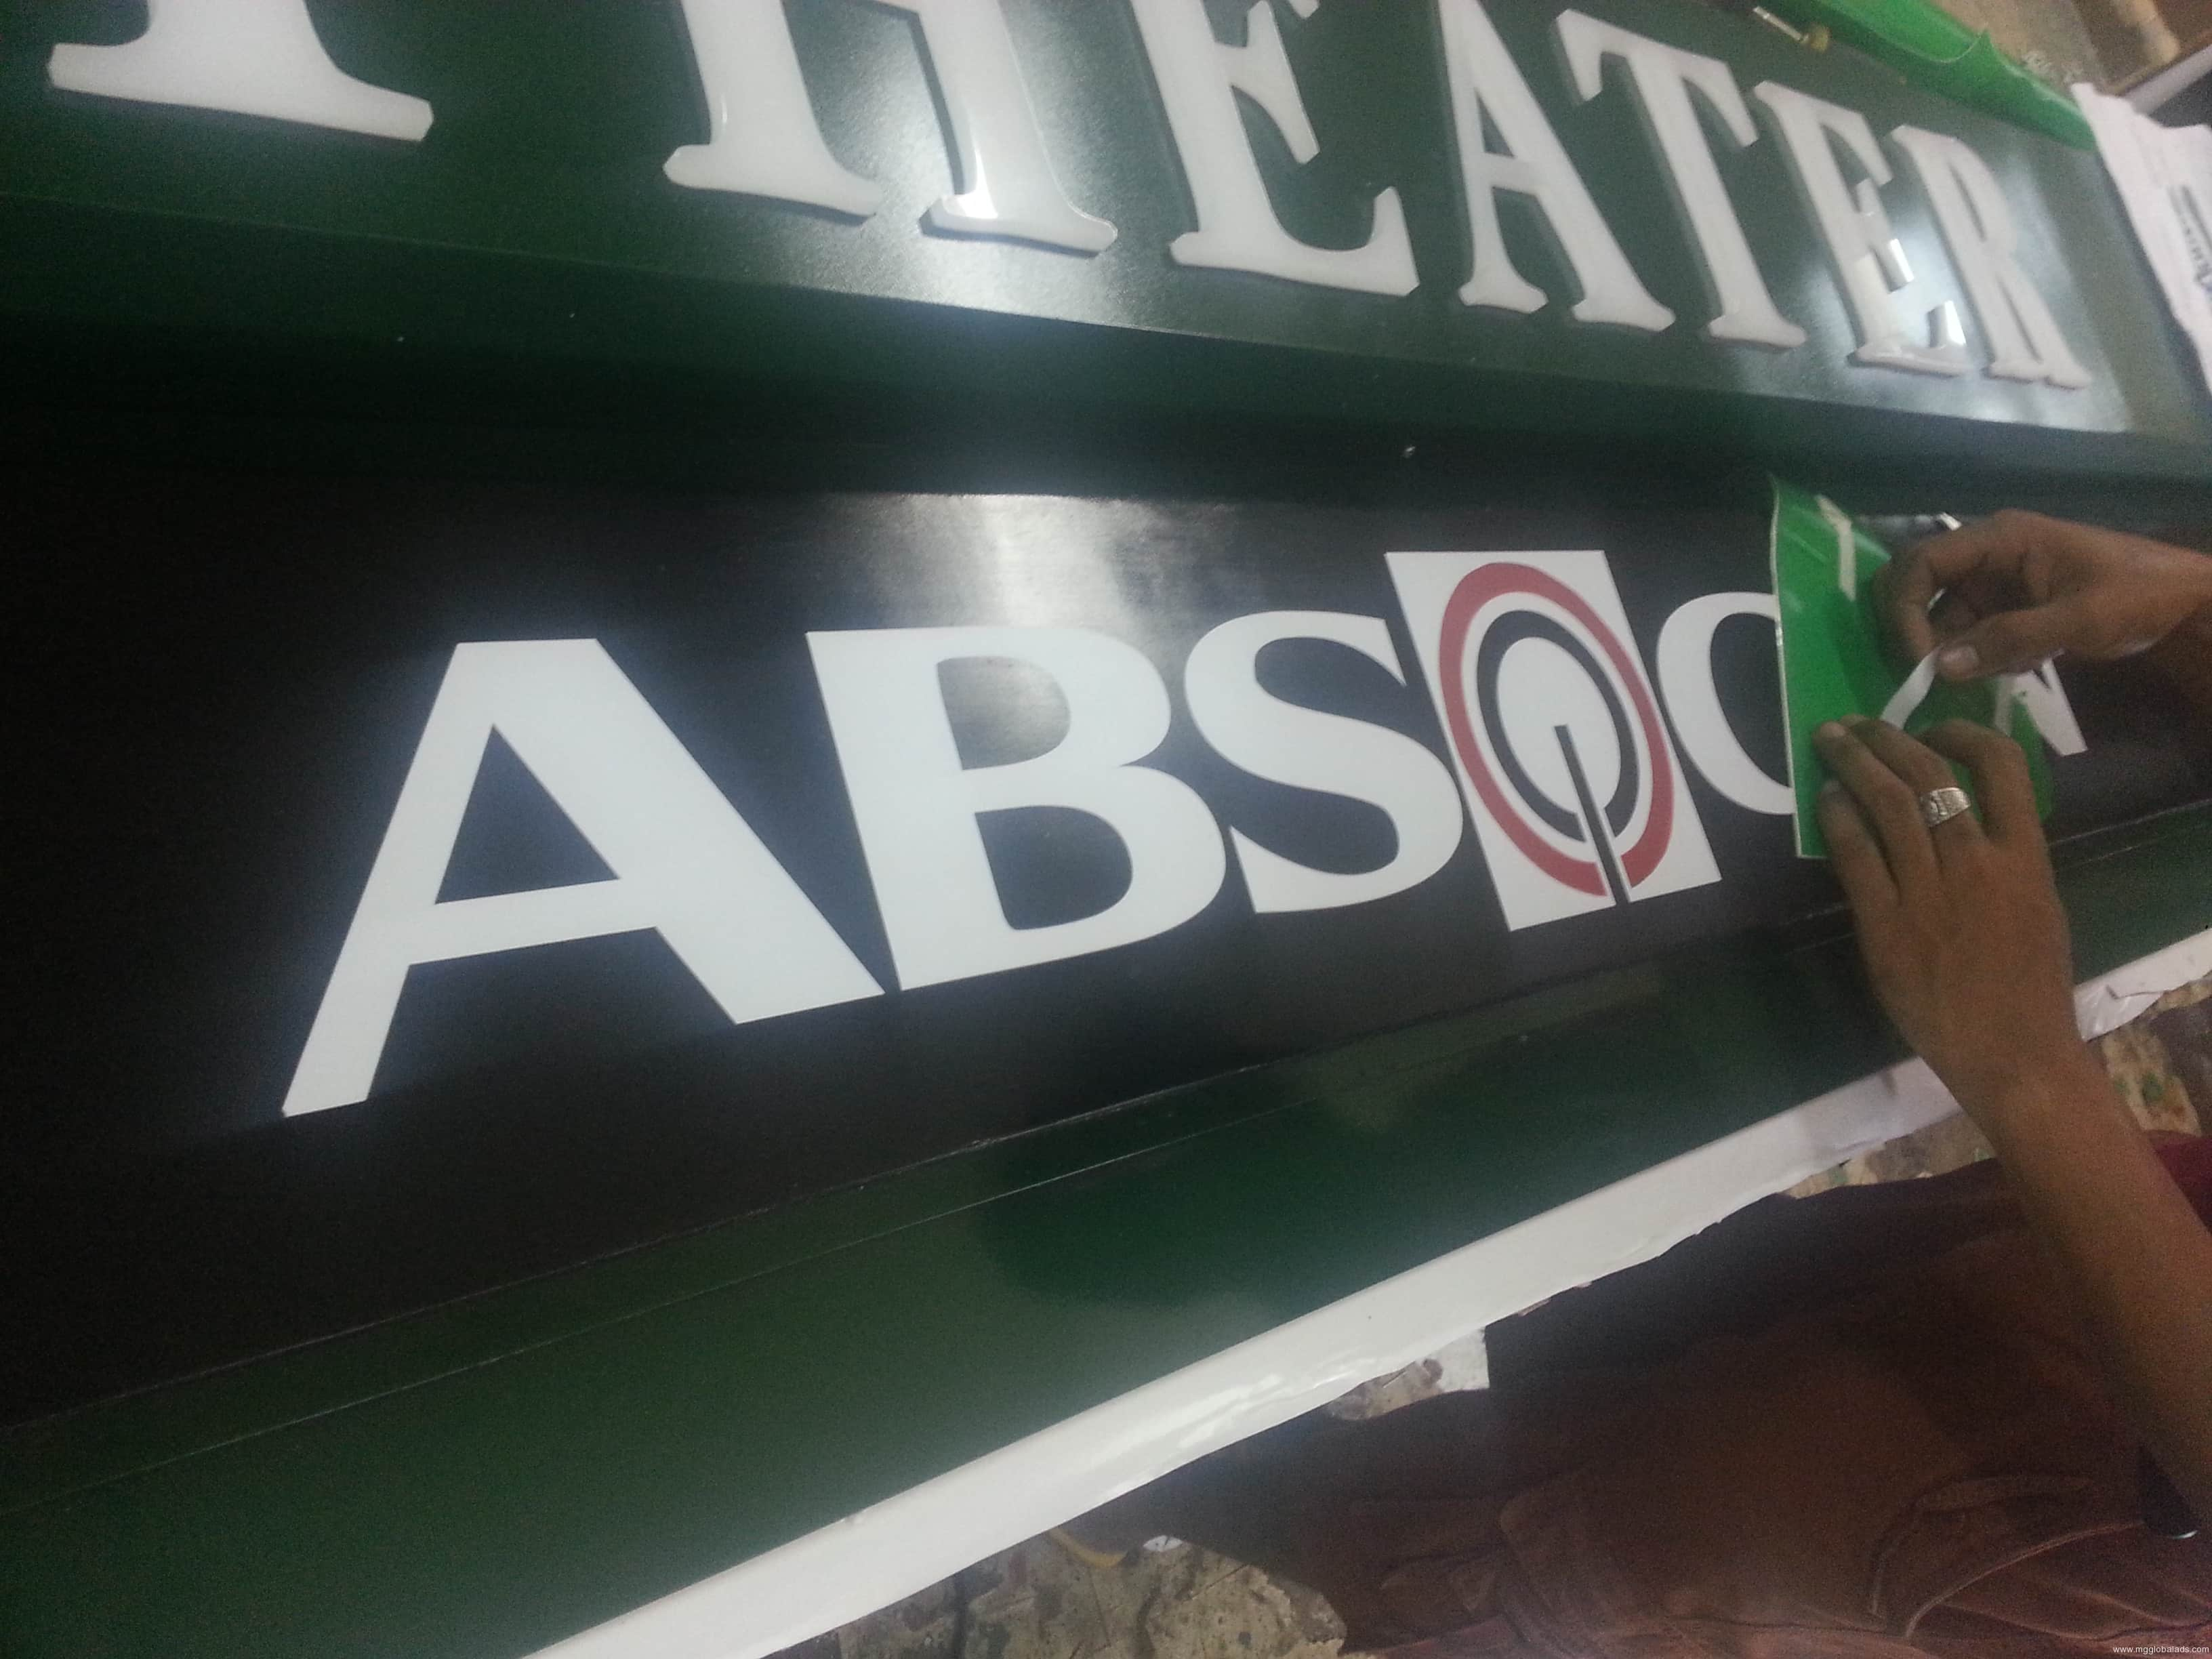 TV signage |signage |ABS-CBN